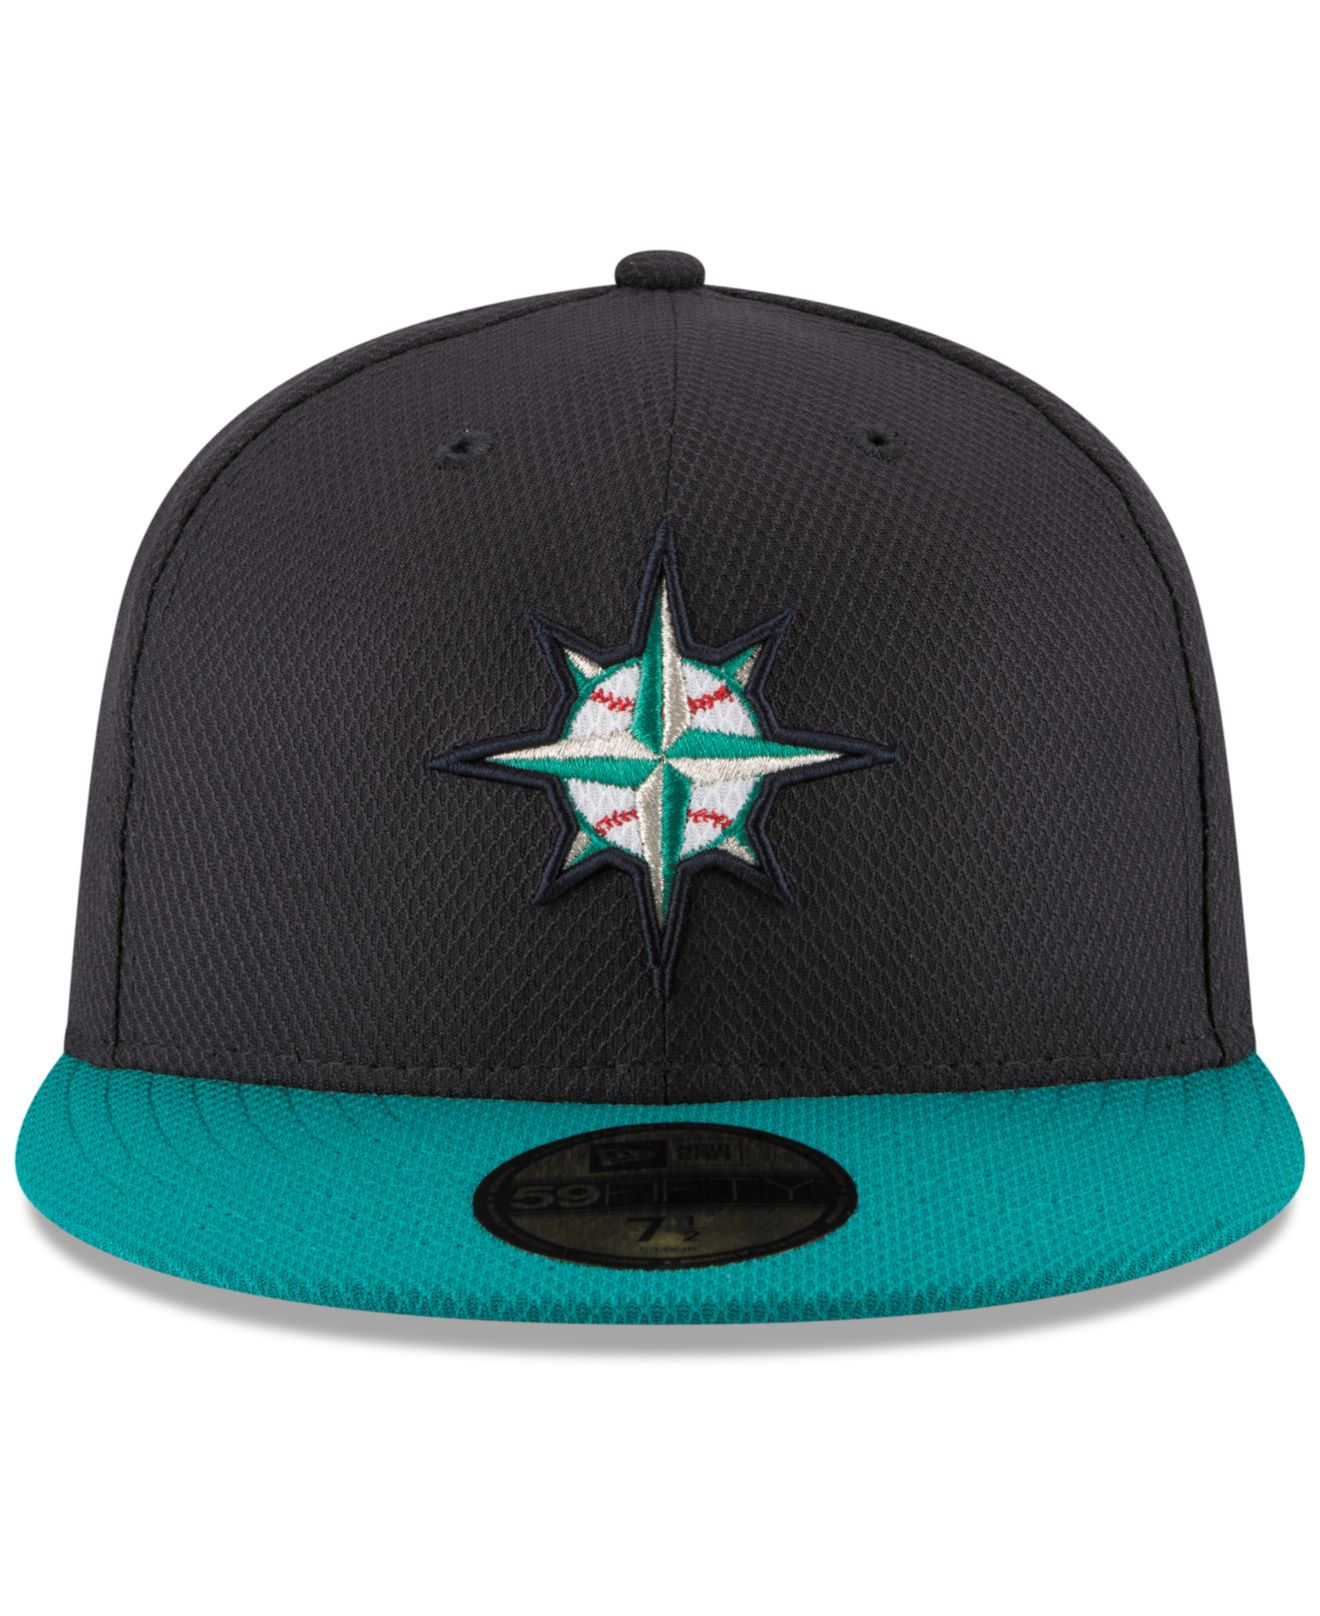 ... where can i buy lyst ktz seattle mariners diamond era 59fifty cap in  blue for men a1f5136c5f85